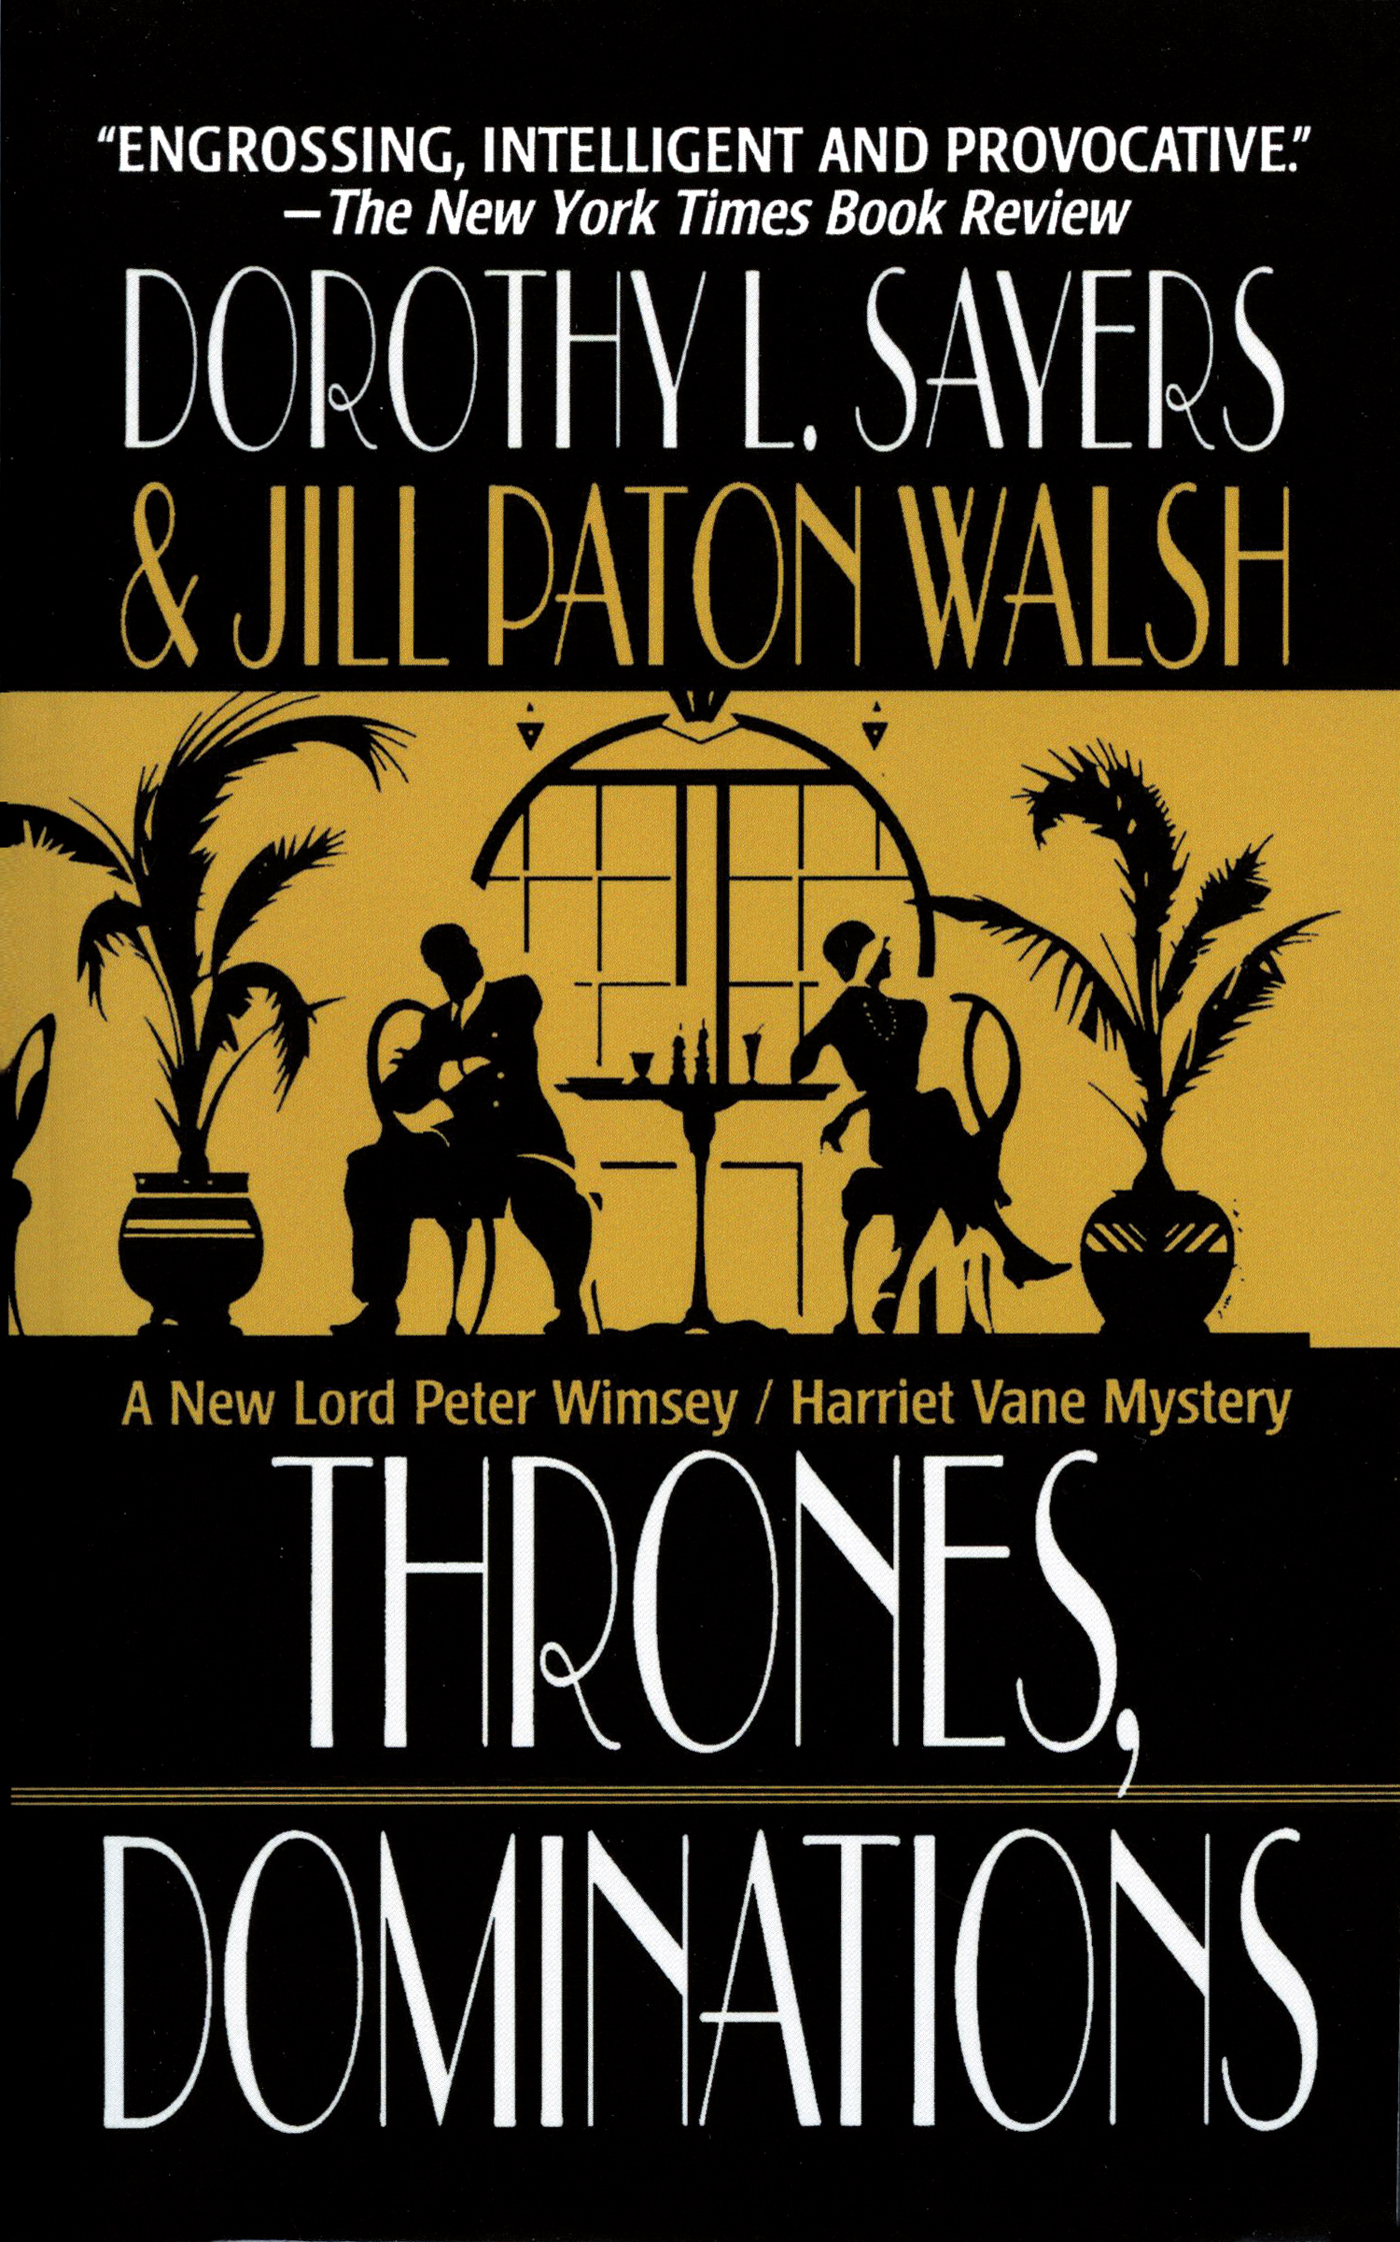 Thrones, Dominations By: Dorothy L. Sayers,Jill Paton Walsh